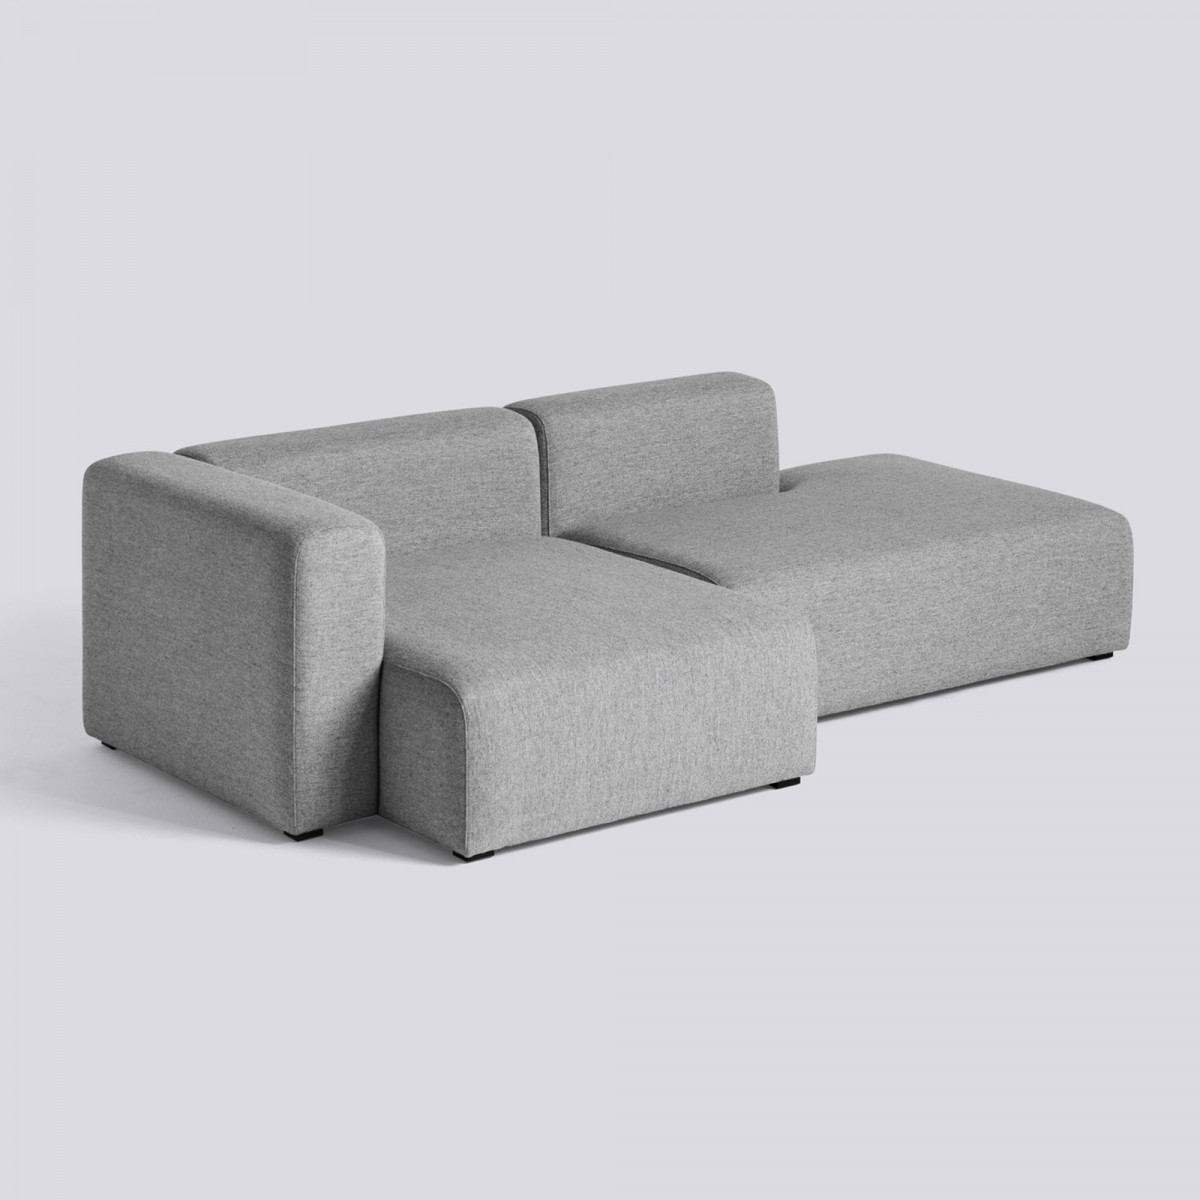 hay mags sofa fabrics electric recliner leather 2 seater modular 1 seaters with kvadrat fabric